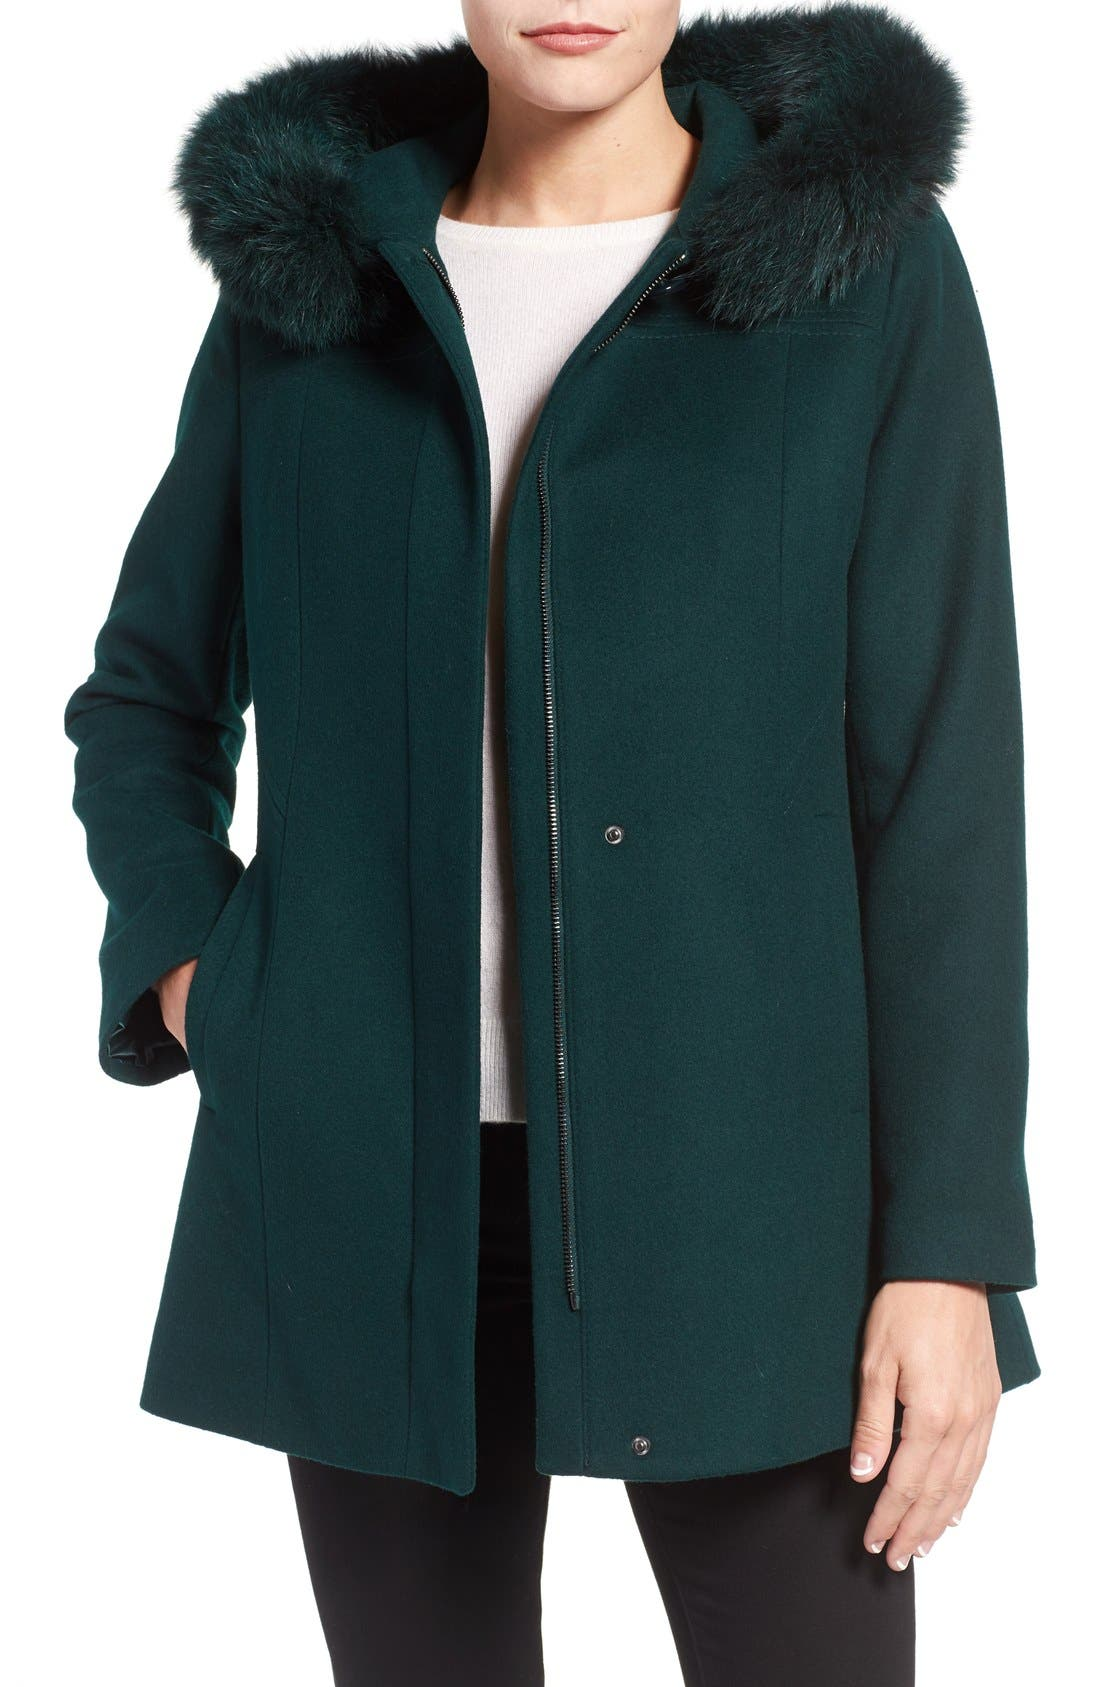 Main Image - Sachi Wool Blend Coat with Genuine Fox Fur Trim (Regular & Petite)